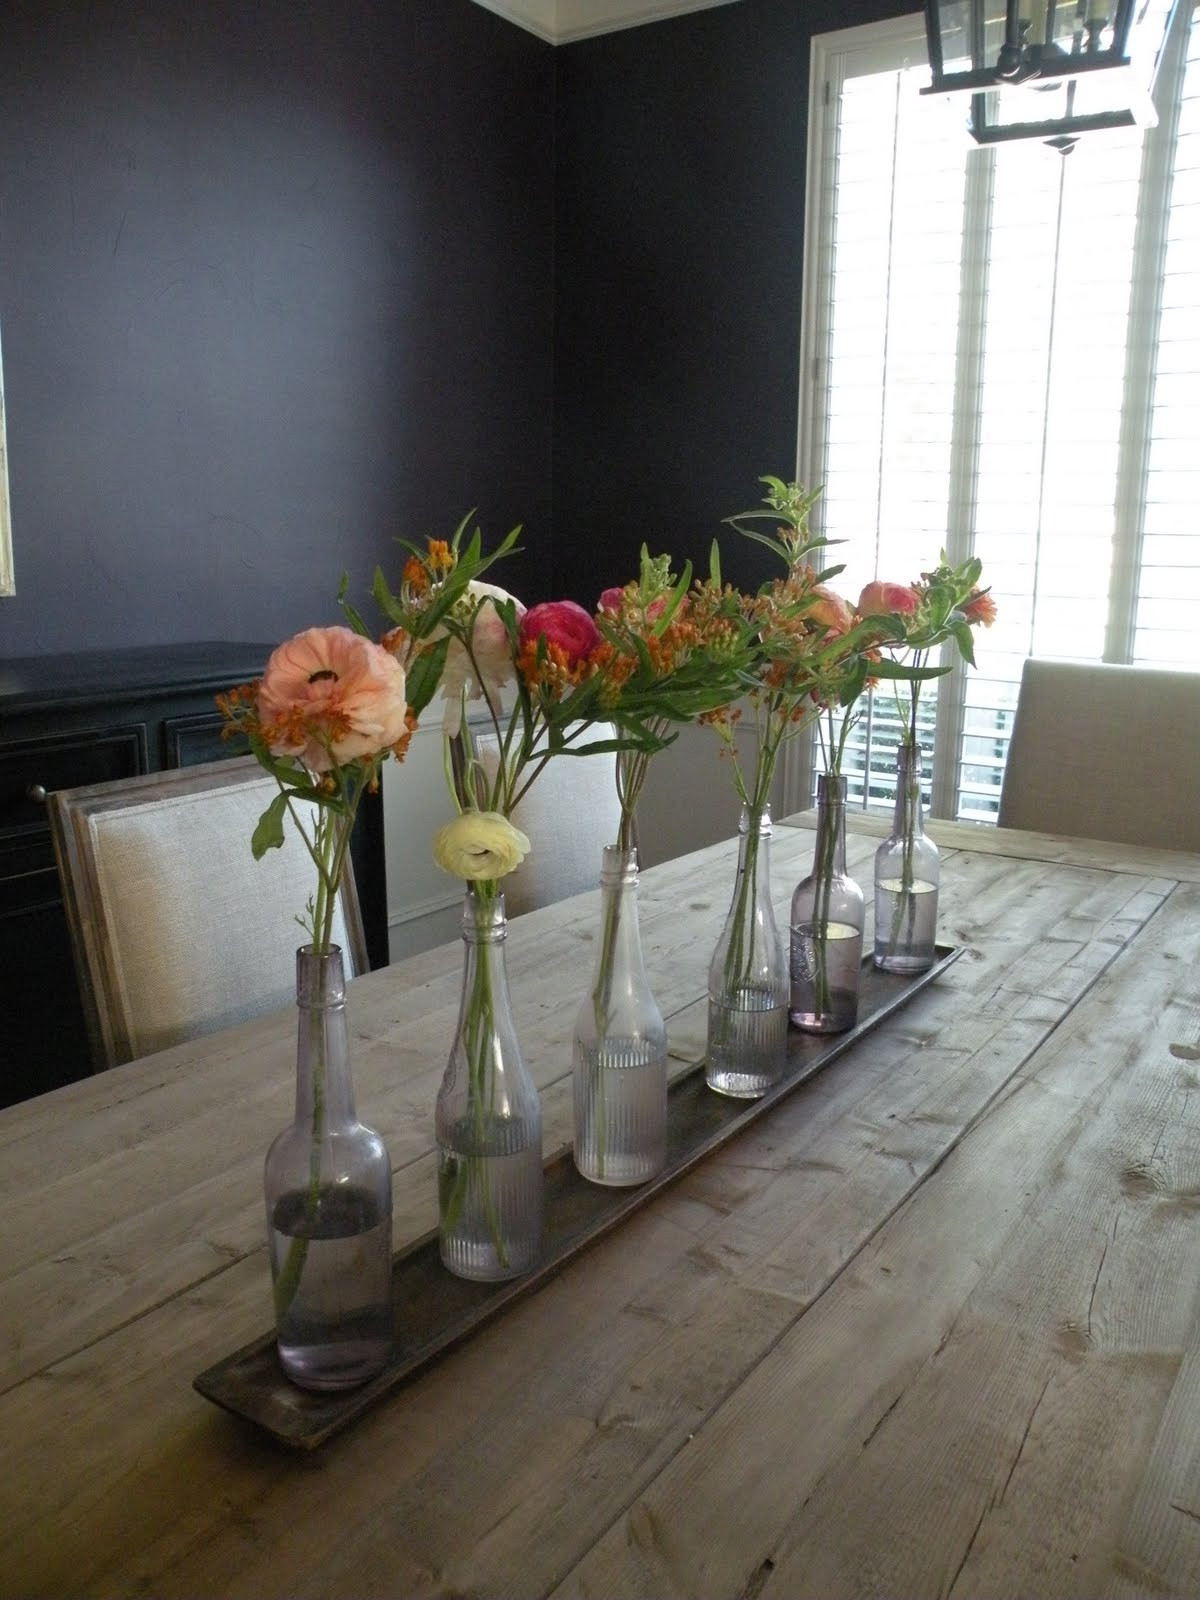 Best ideas about Dining Room Centerpieces . Save or Pin Exquisite Dining Room Table Centerpieces – For A plete Now.